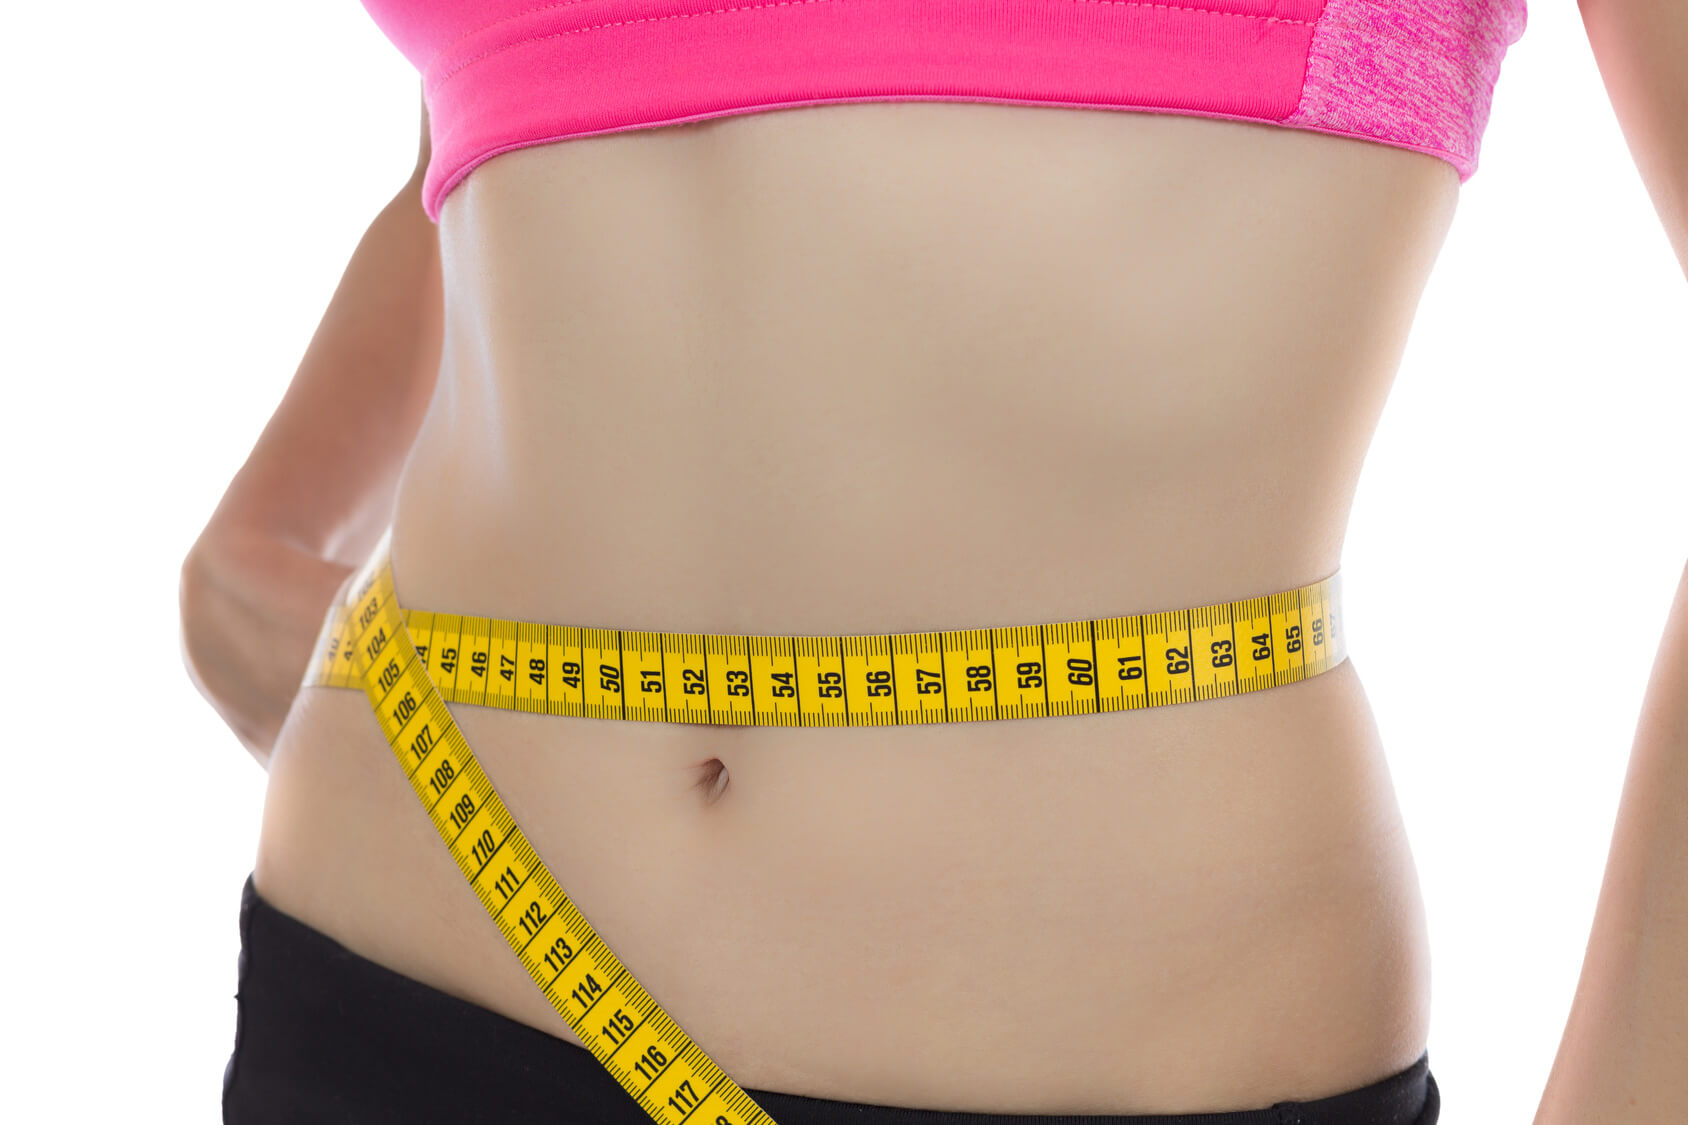 medical weight loss designed just for women cherokee women s health